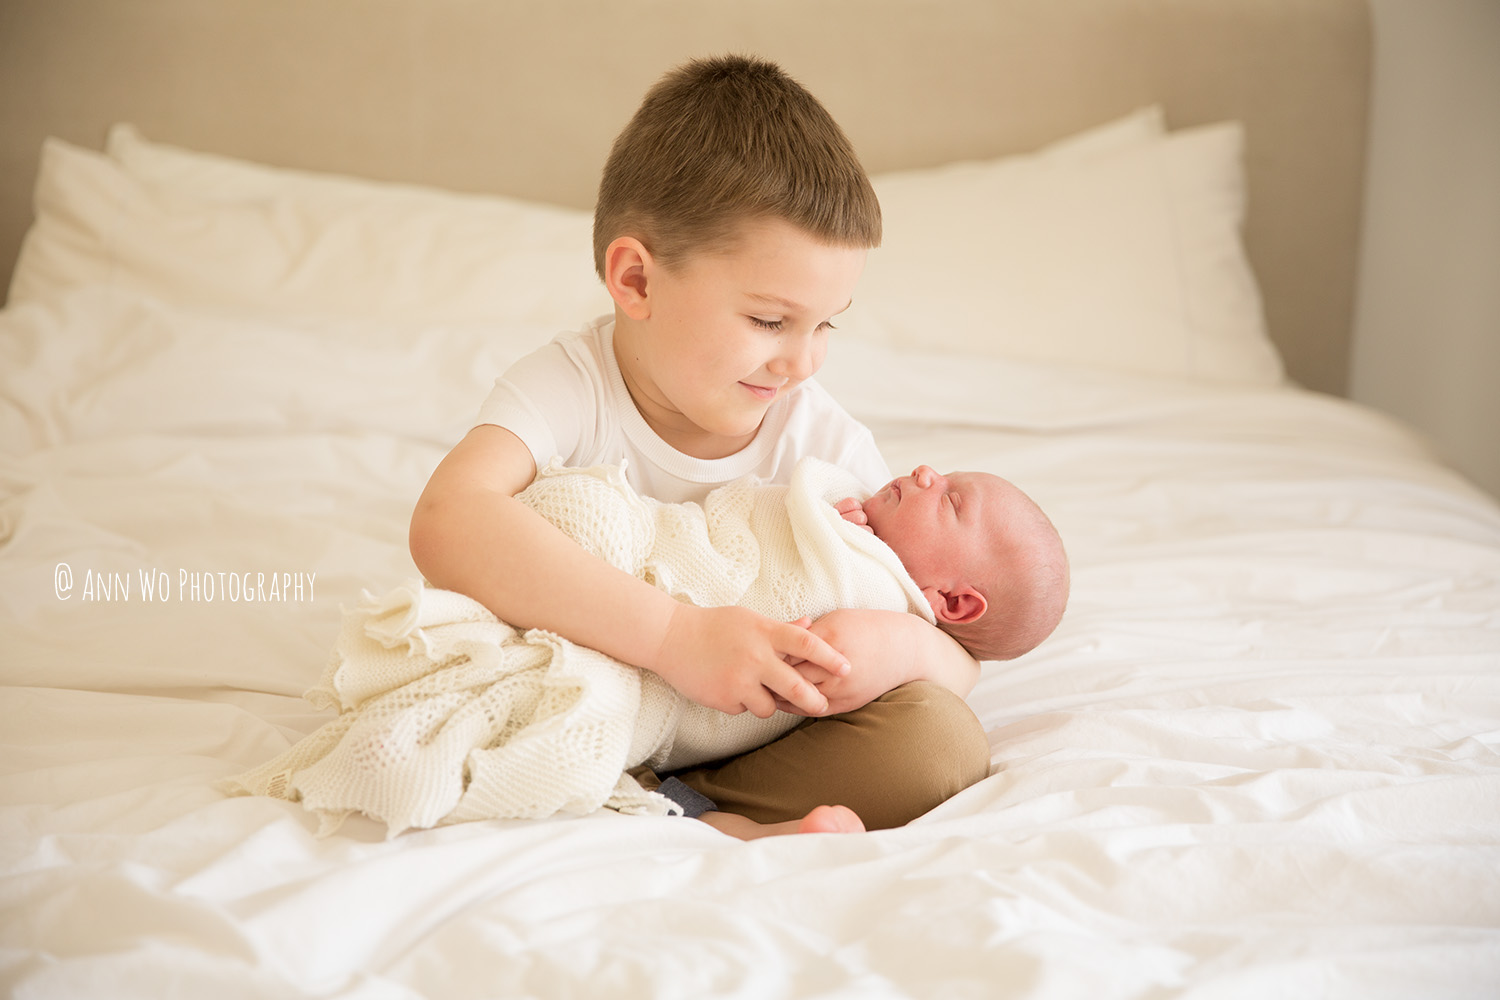 Newborn baby and big brother lifestyle family photography ann wo england